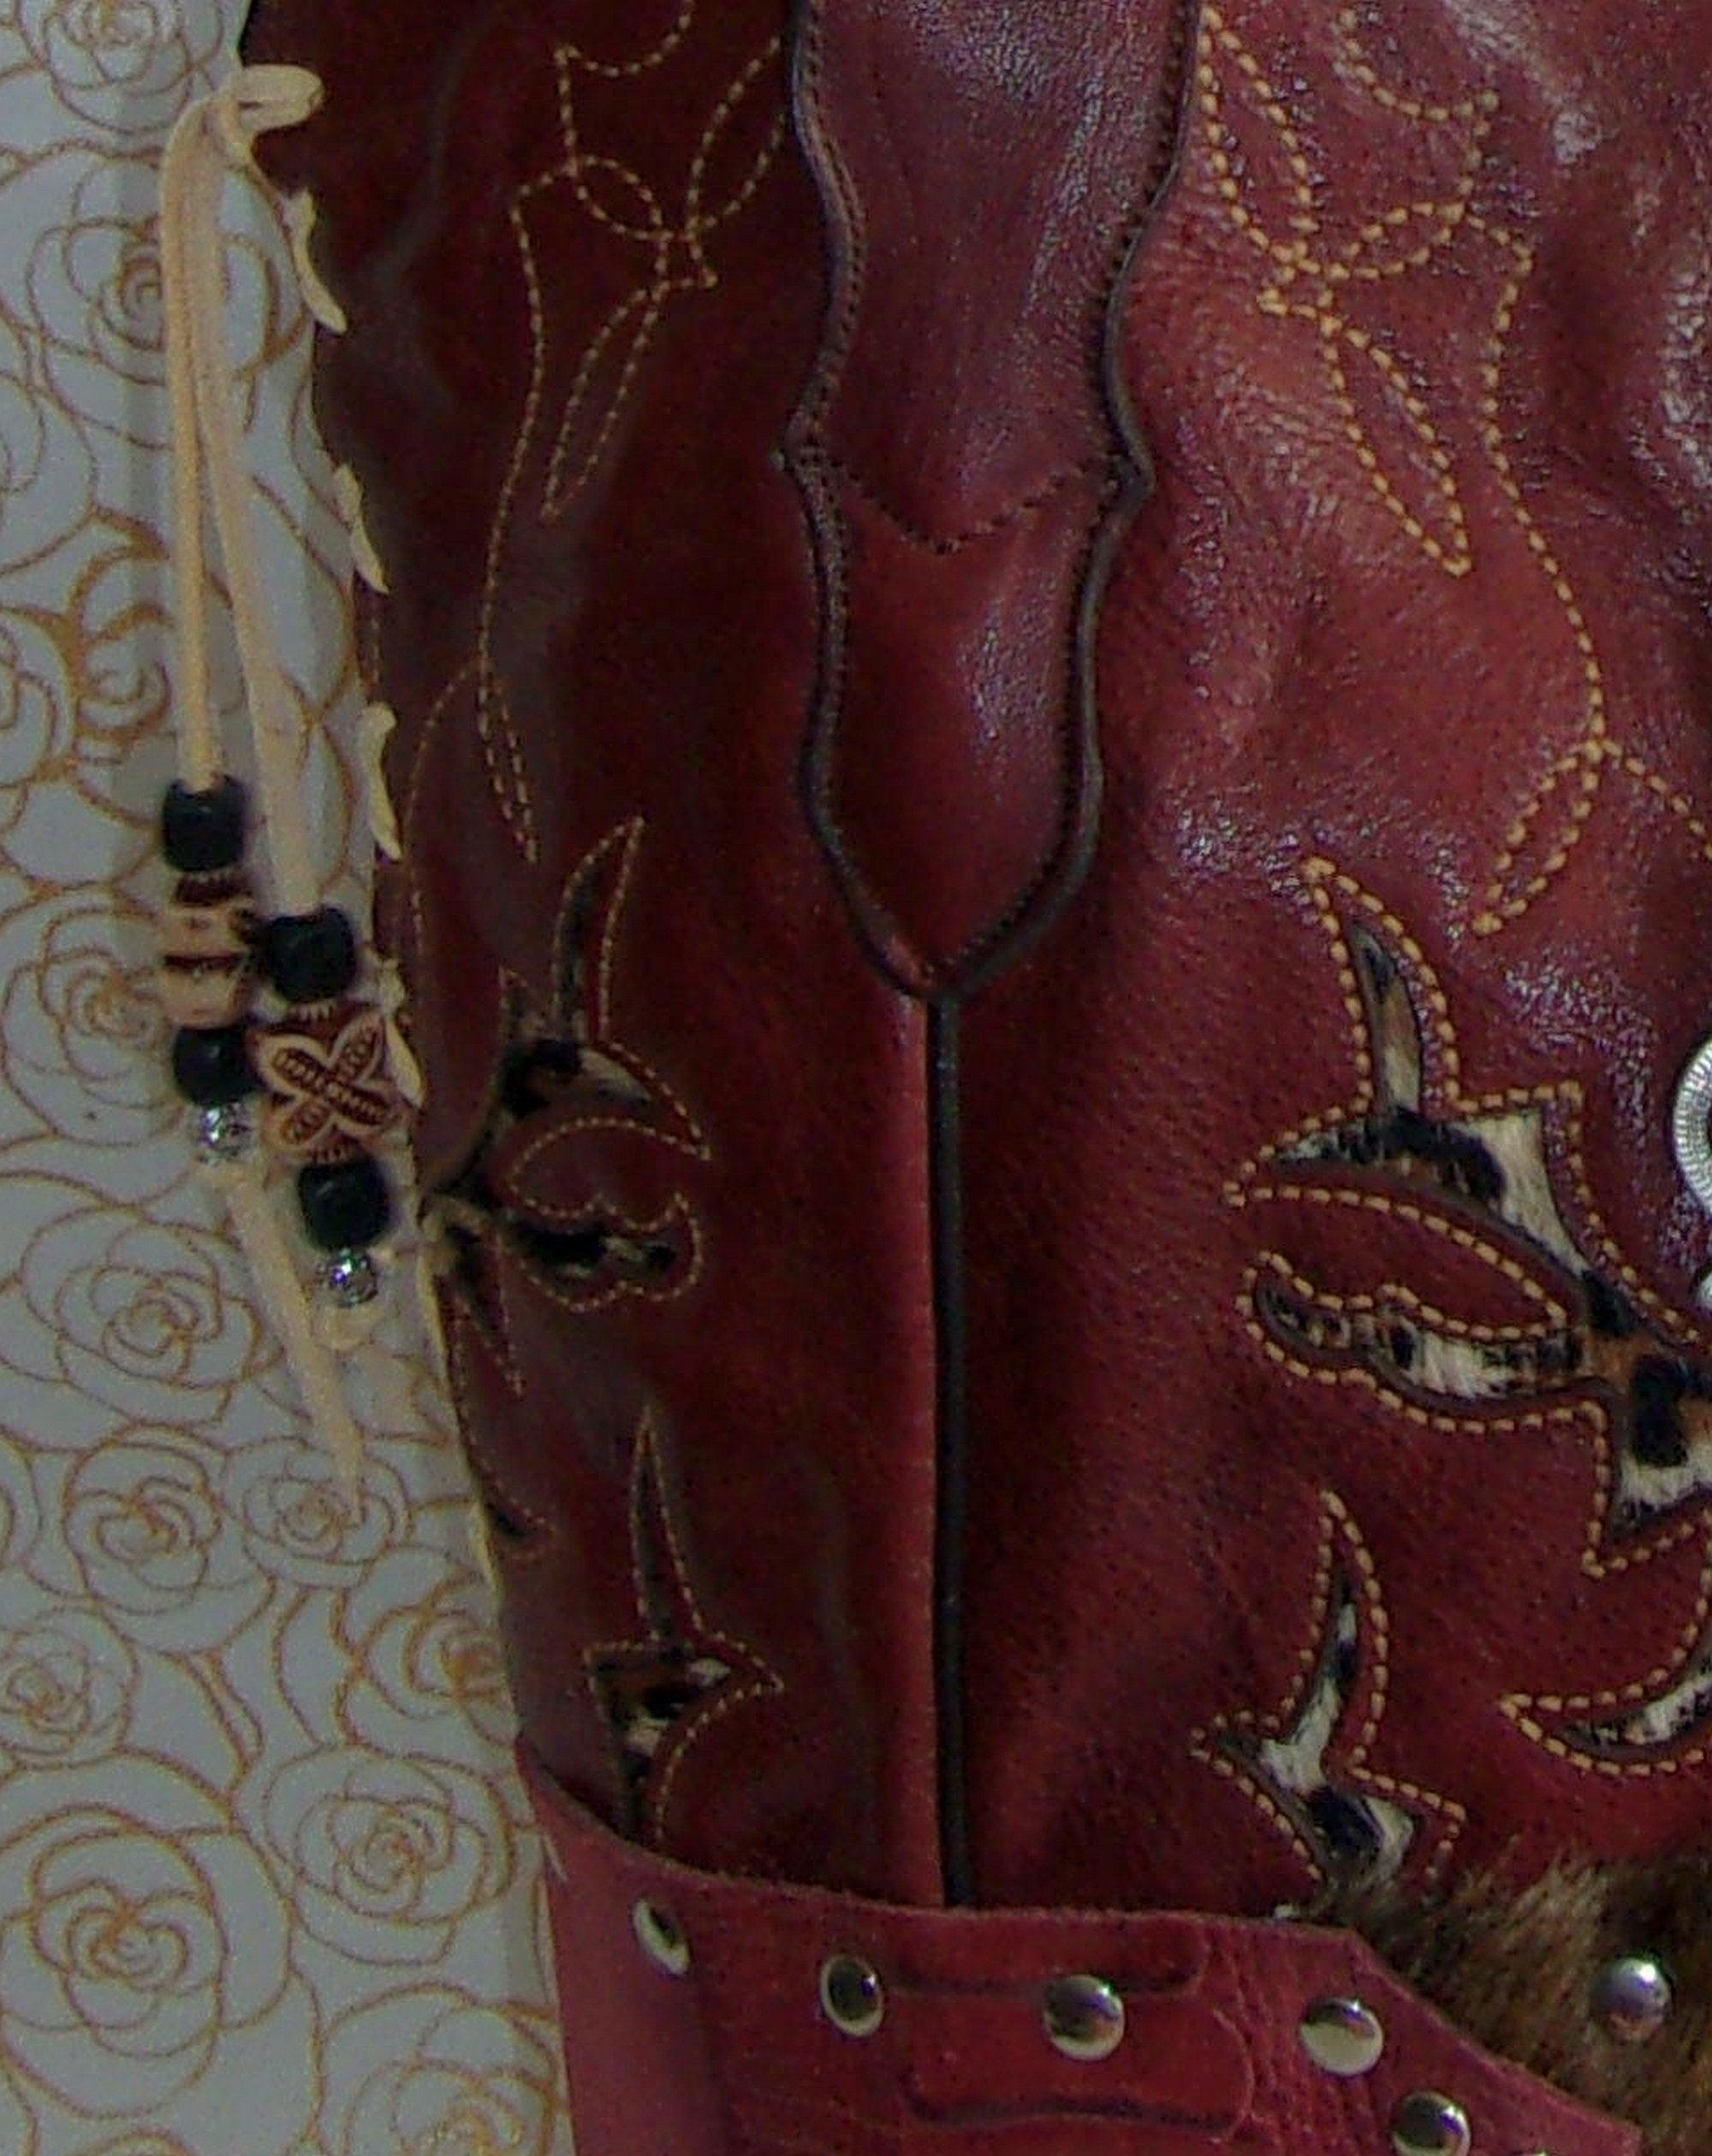 close view of ts274 red leather cheetah pattern unique leather purse handcrafted from recycled reclaimed cowboy boots